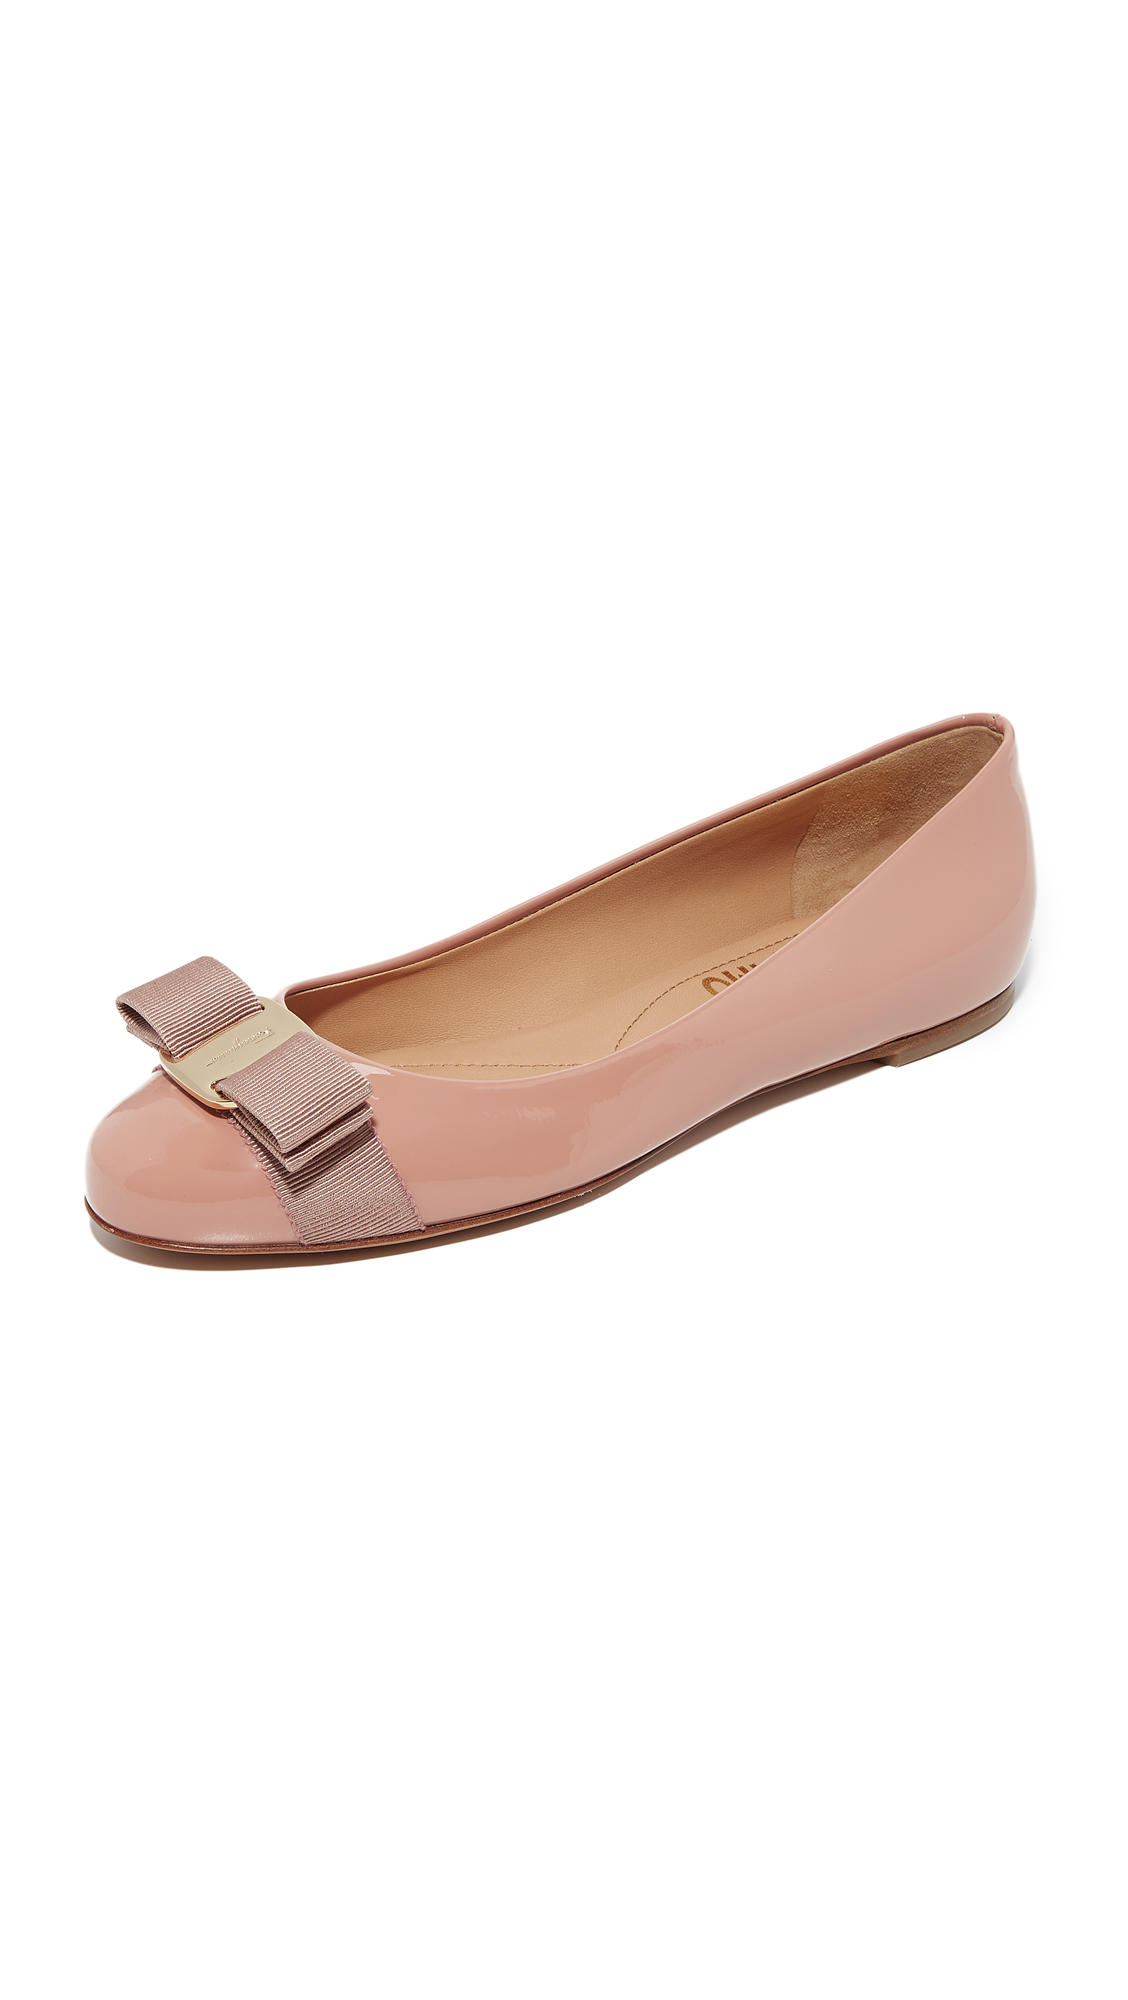 Salvatore Ferragamo Varina Flats - New Blush